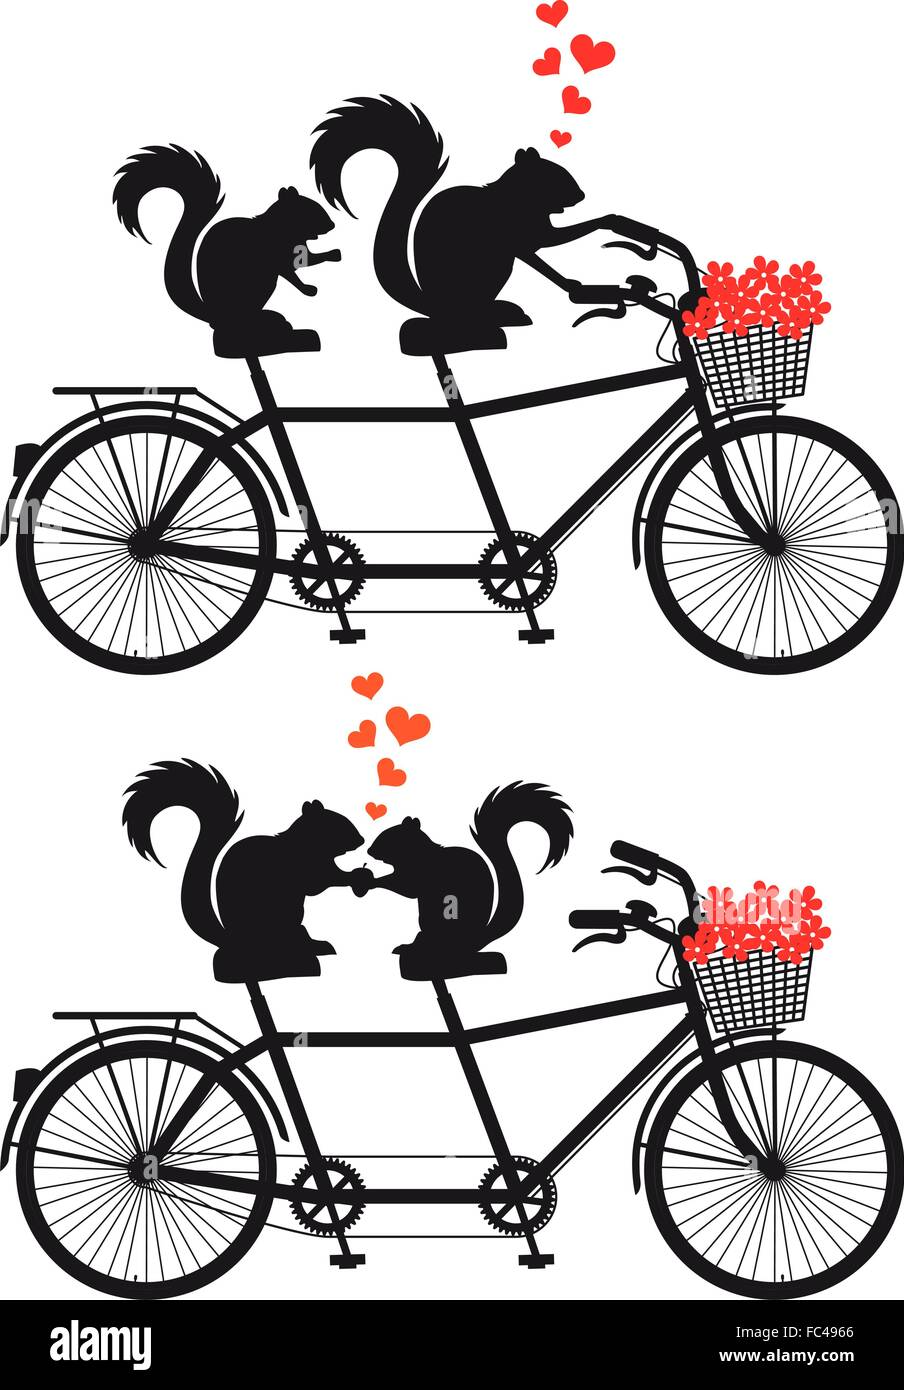 Squirrel on tandem bicycle, vector illustration - Stock Image